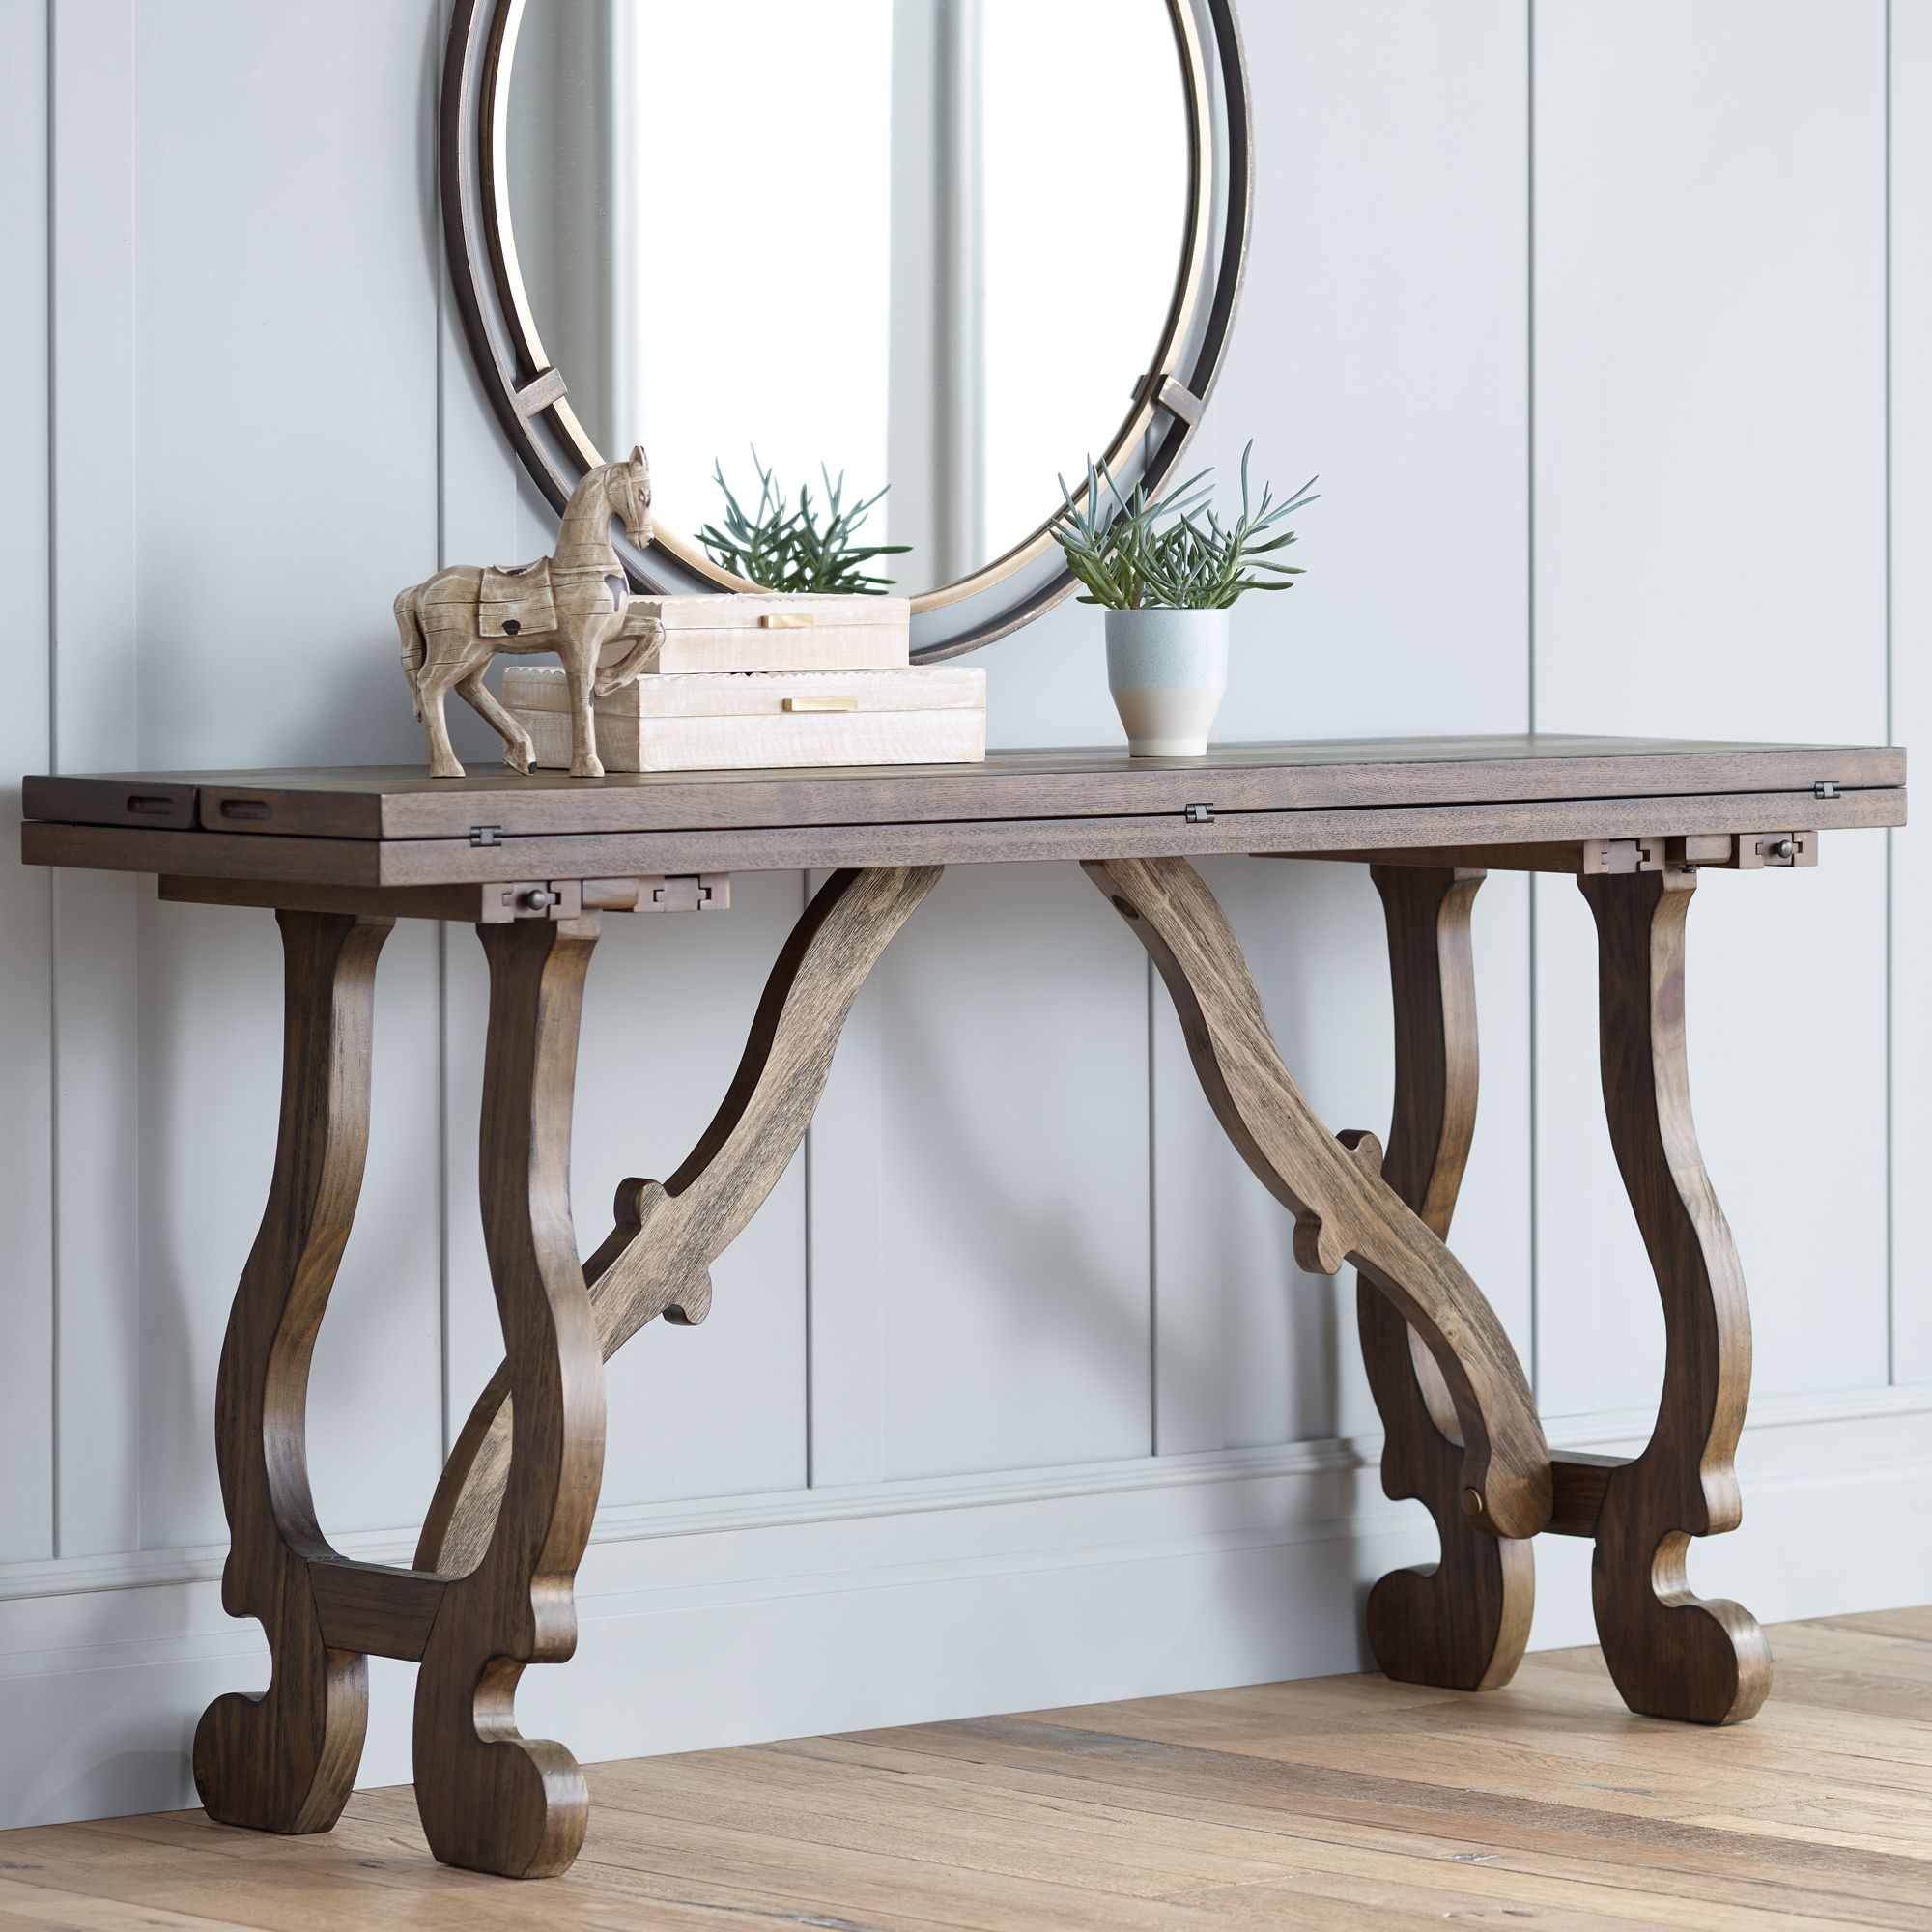 Orchard Brown Pine Wood Foldout Console Table